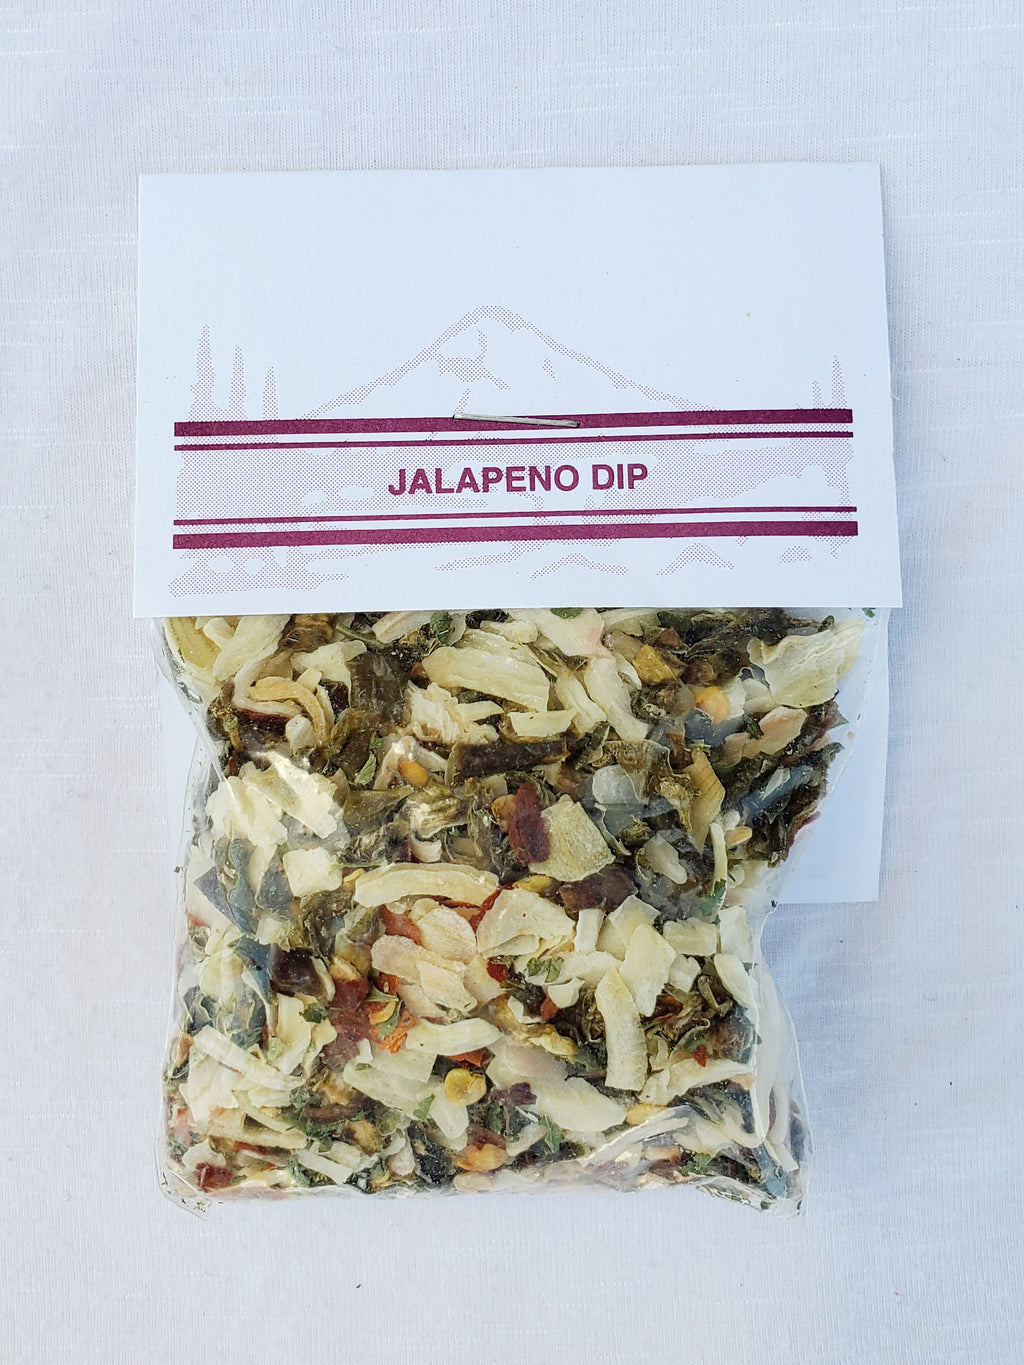 Northwest Spices - Jalapeno Dip and Seasoning Mix